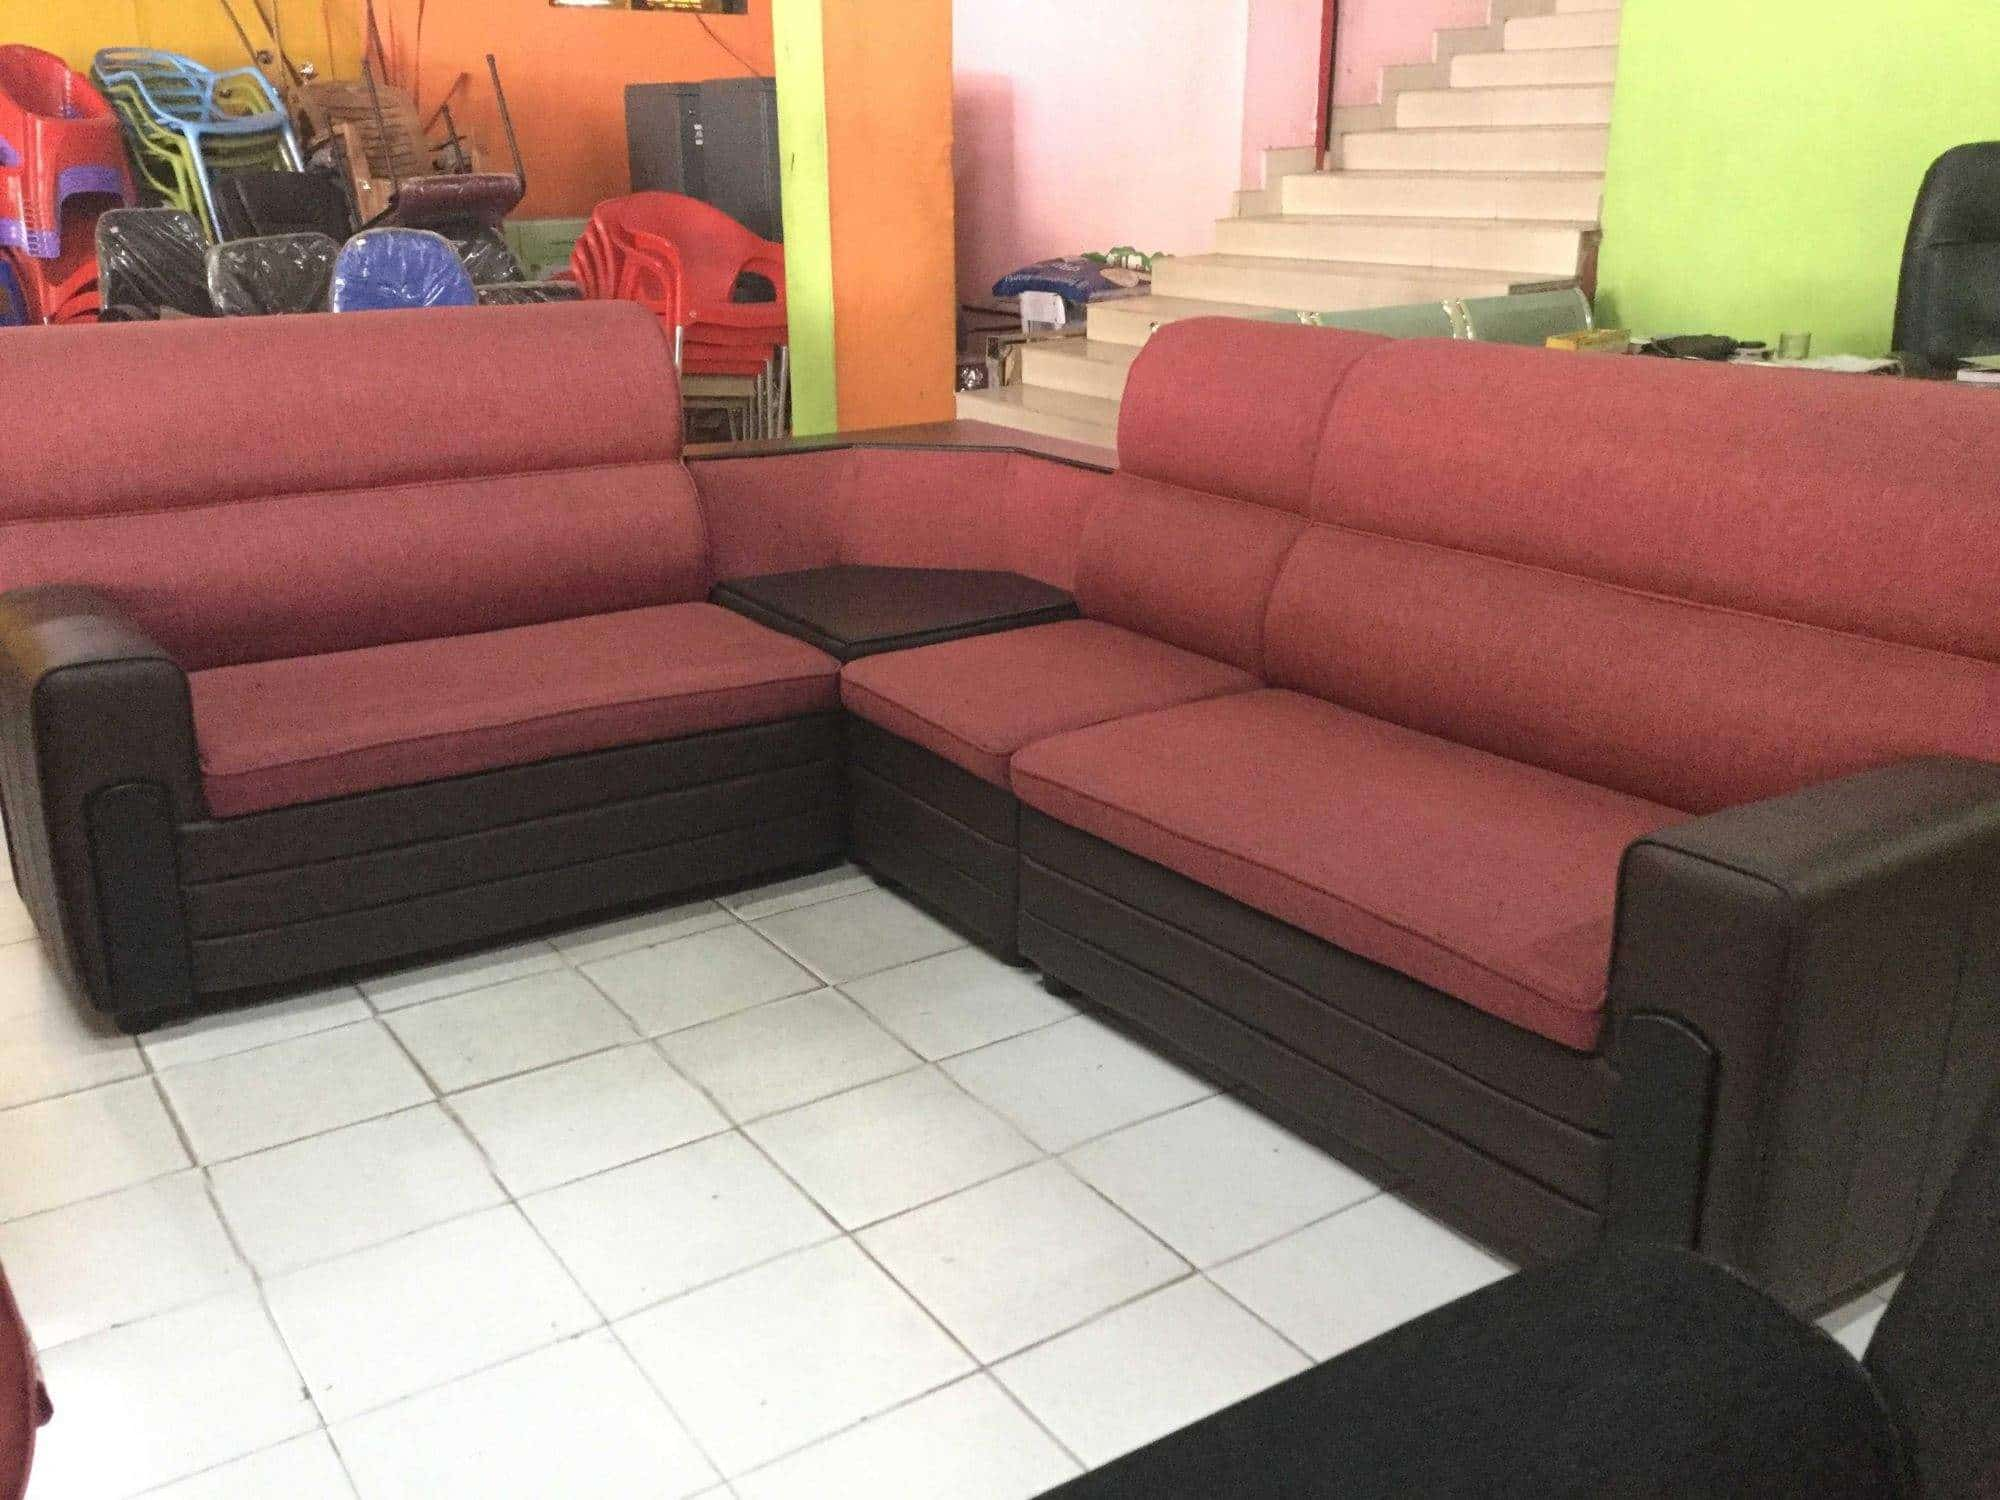 Impulse Designers Furniture Factory Outlet, Kalamassery   Furniture Dealers  In Ernakulam   Justdial